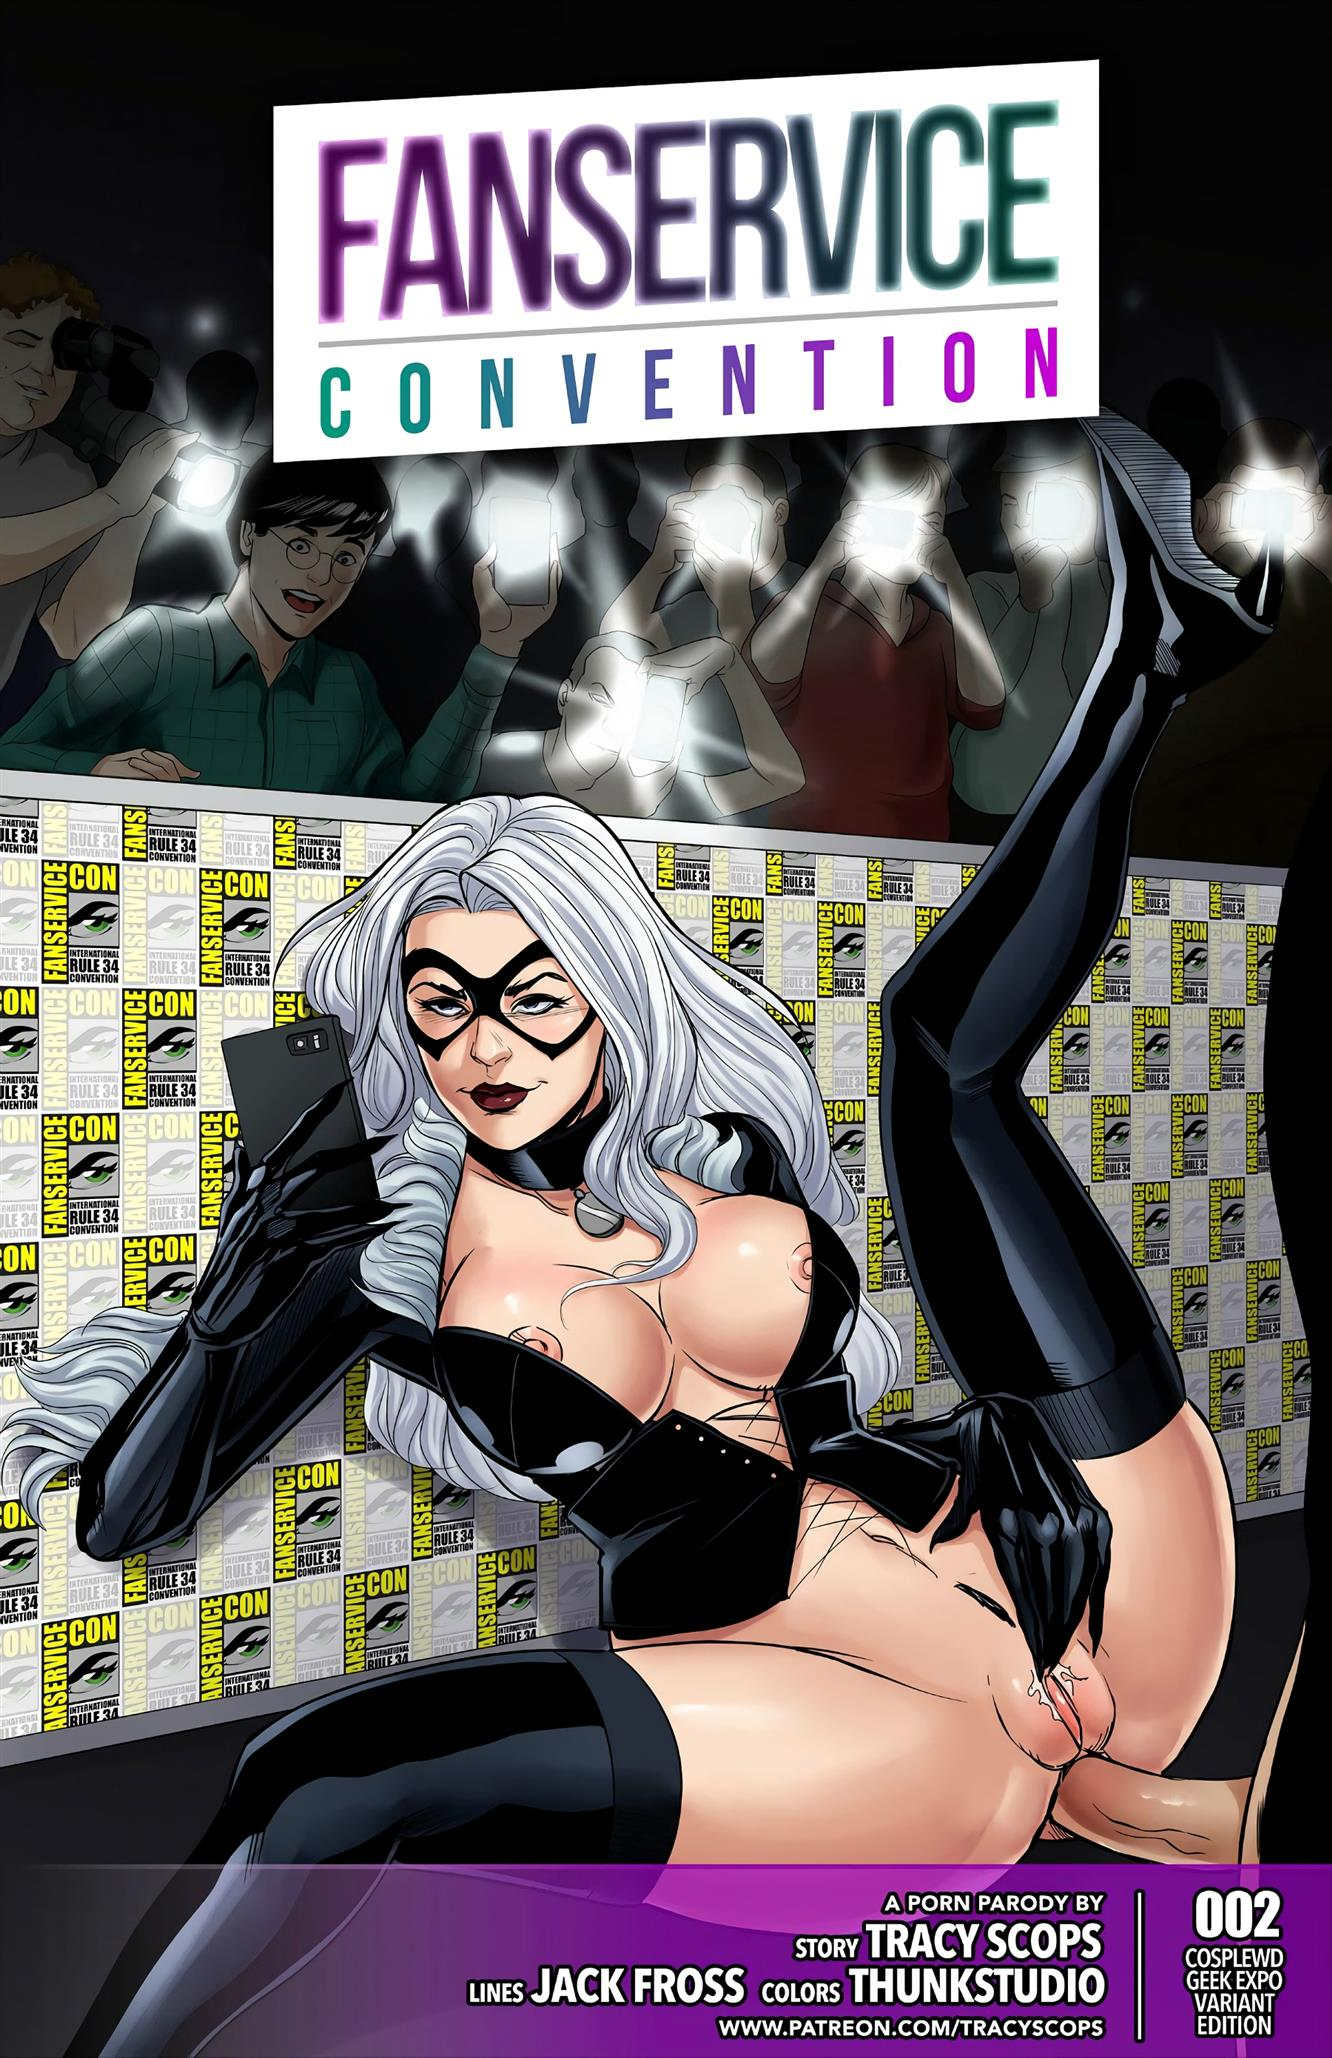 Fanservice Convention 2 [Tracy Scops]